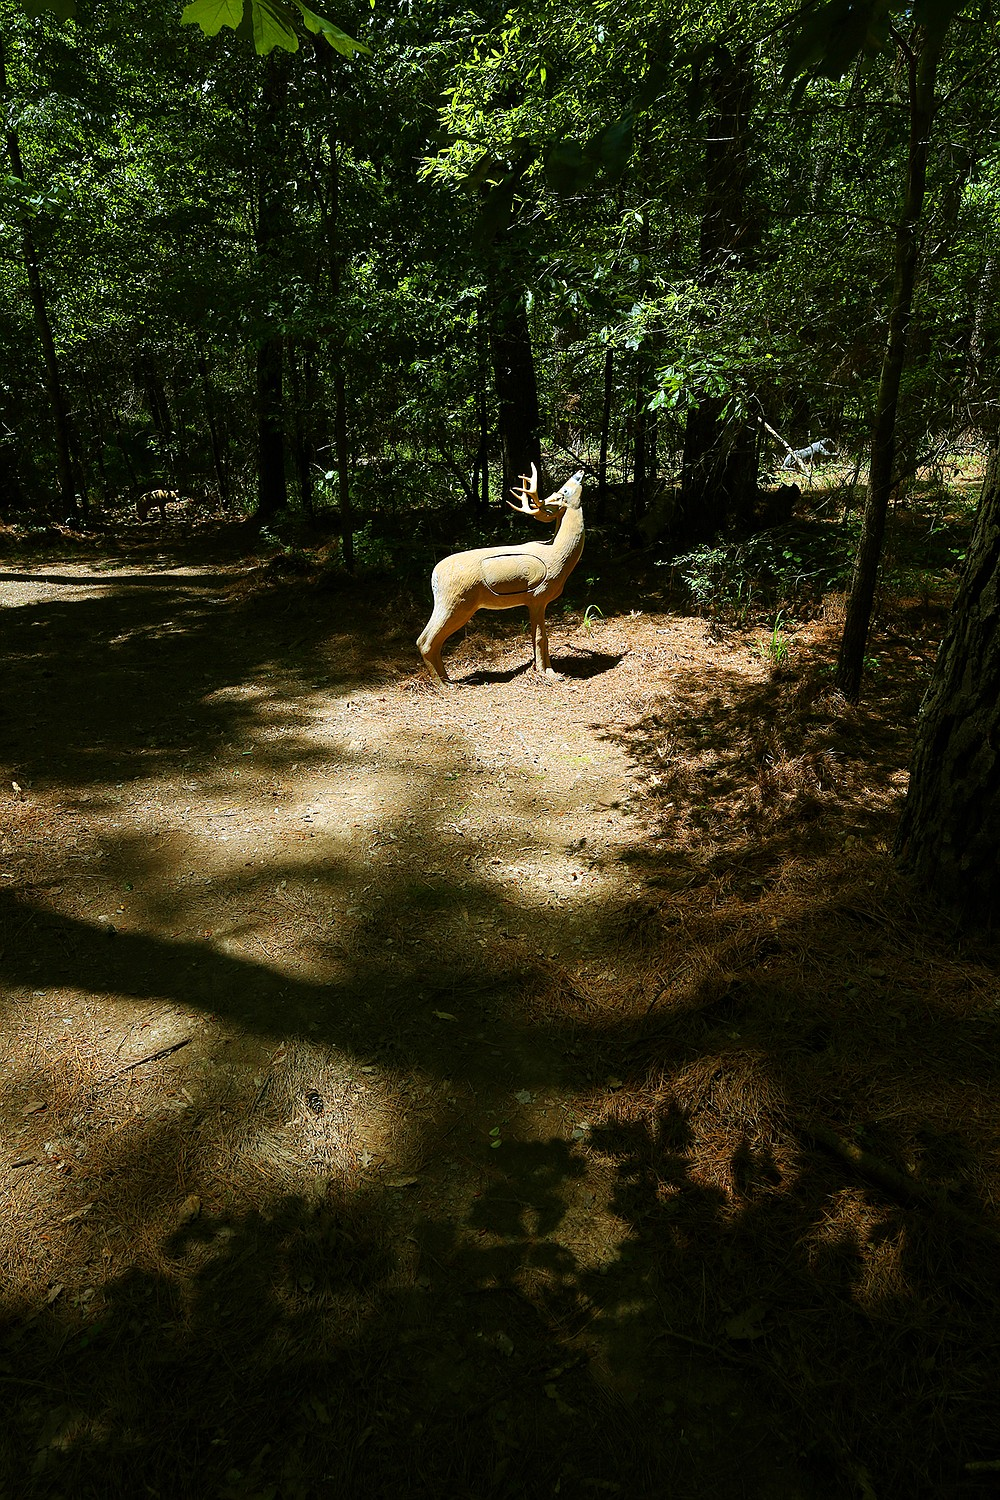 Those who enjoy shooting their bow might find the 3-D archery range at the Potlatch Conservation Education Center at Cook's Lake of interest. - Photo by Corbet Deary of The Sentinel-Record